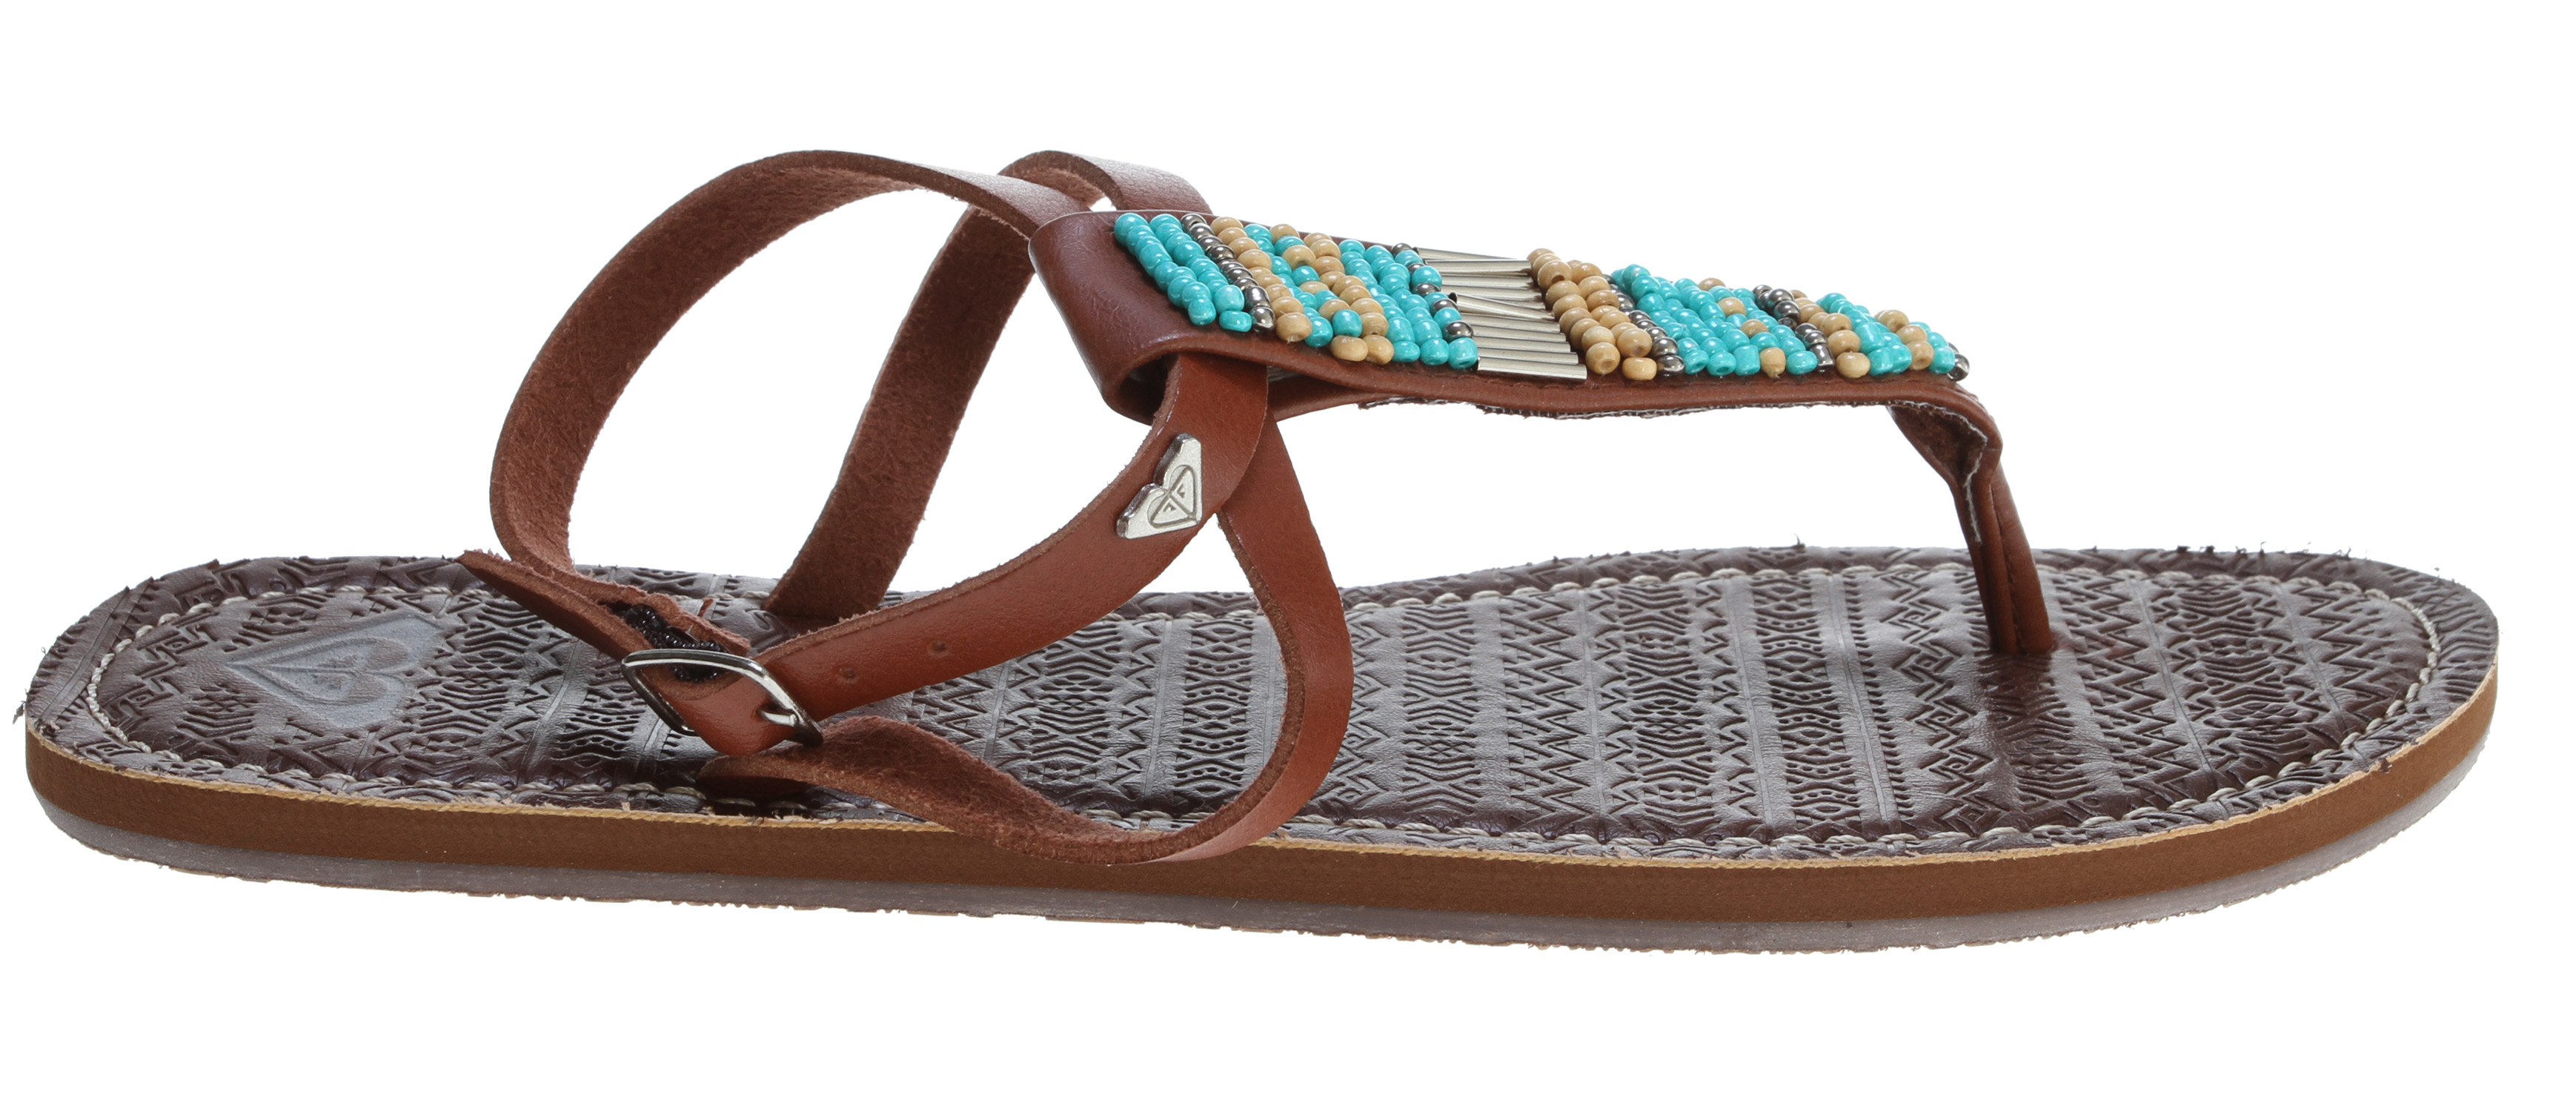 Surf Key Features of the Roxy Antigua Sandals: Wood and bead ornamented t-strap sandal Micro suede lining Embossed footbed Soft EVA insole TPR outsole - $38.95